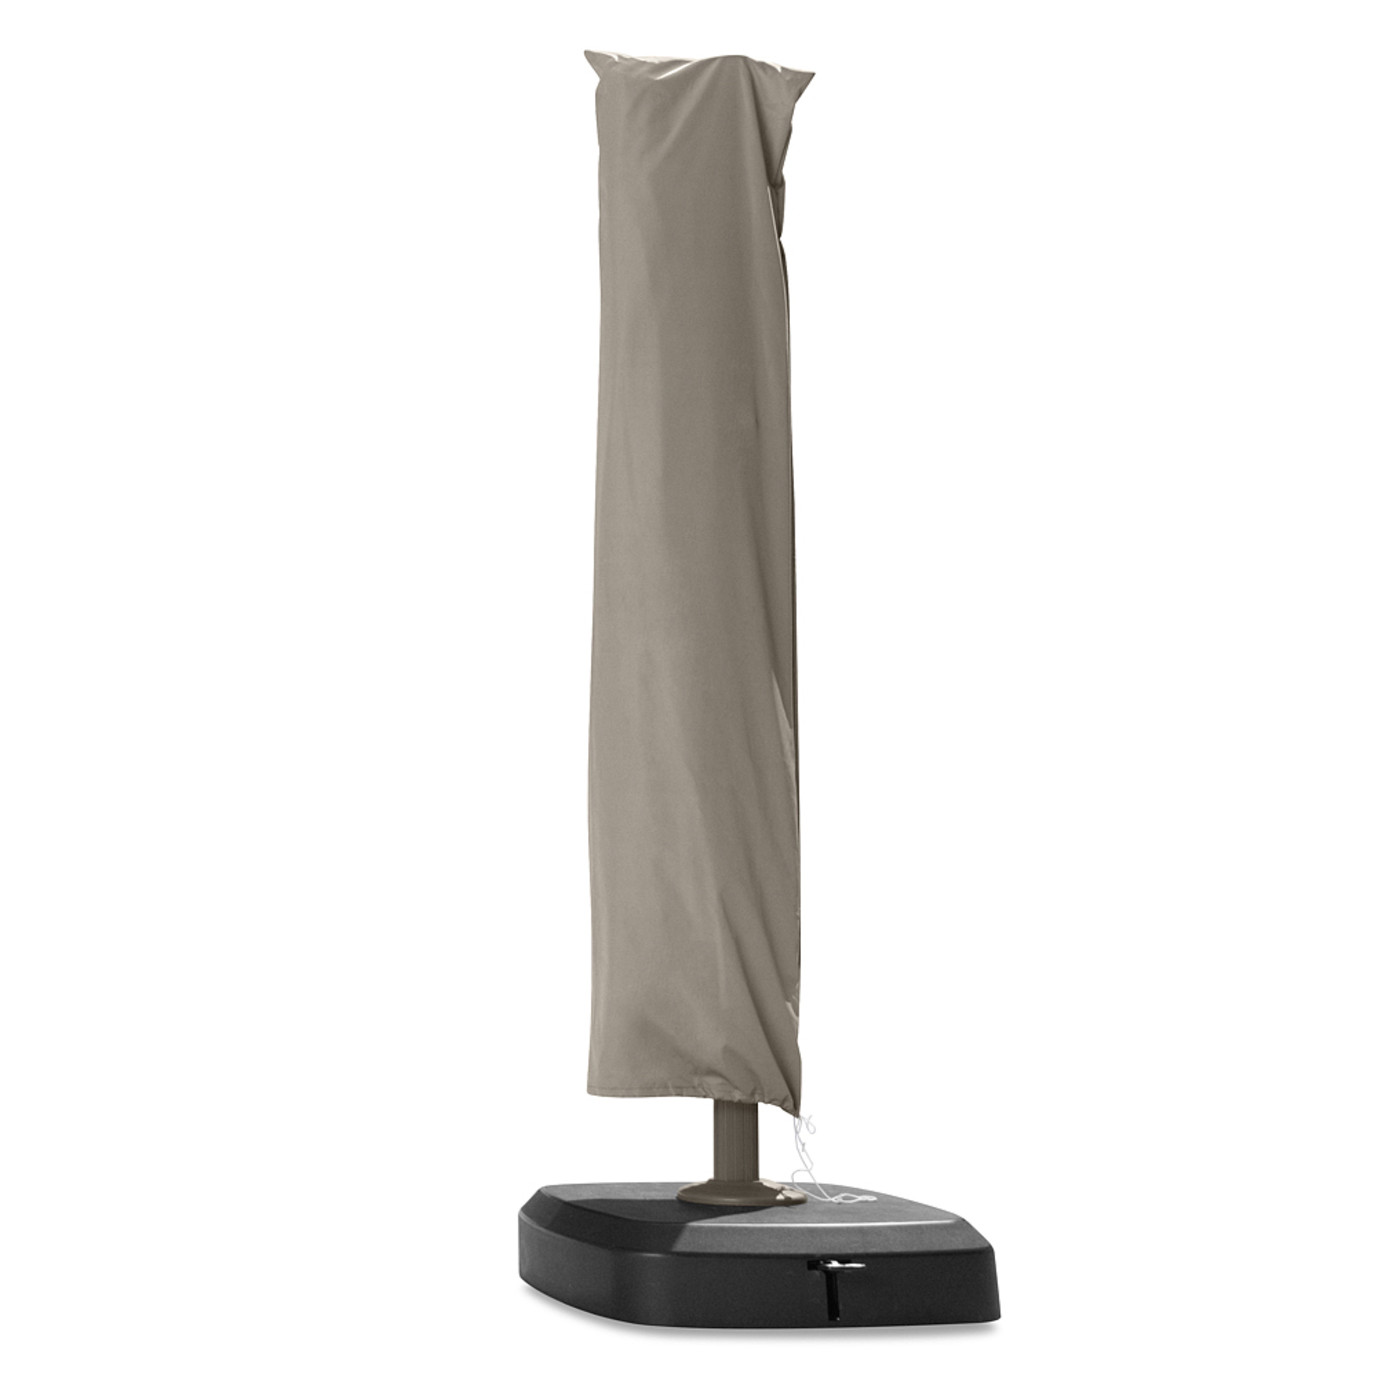 Portofino™ Comfort 10ft Resort Umbrella - Espresso Taupe